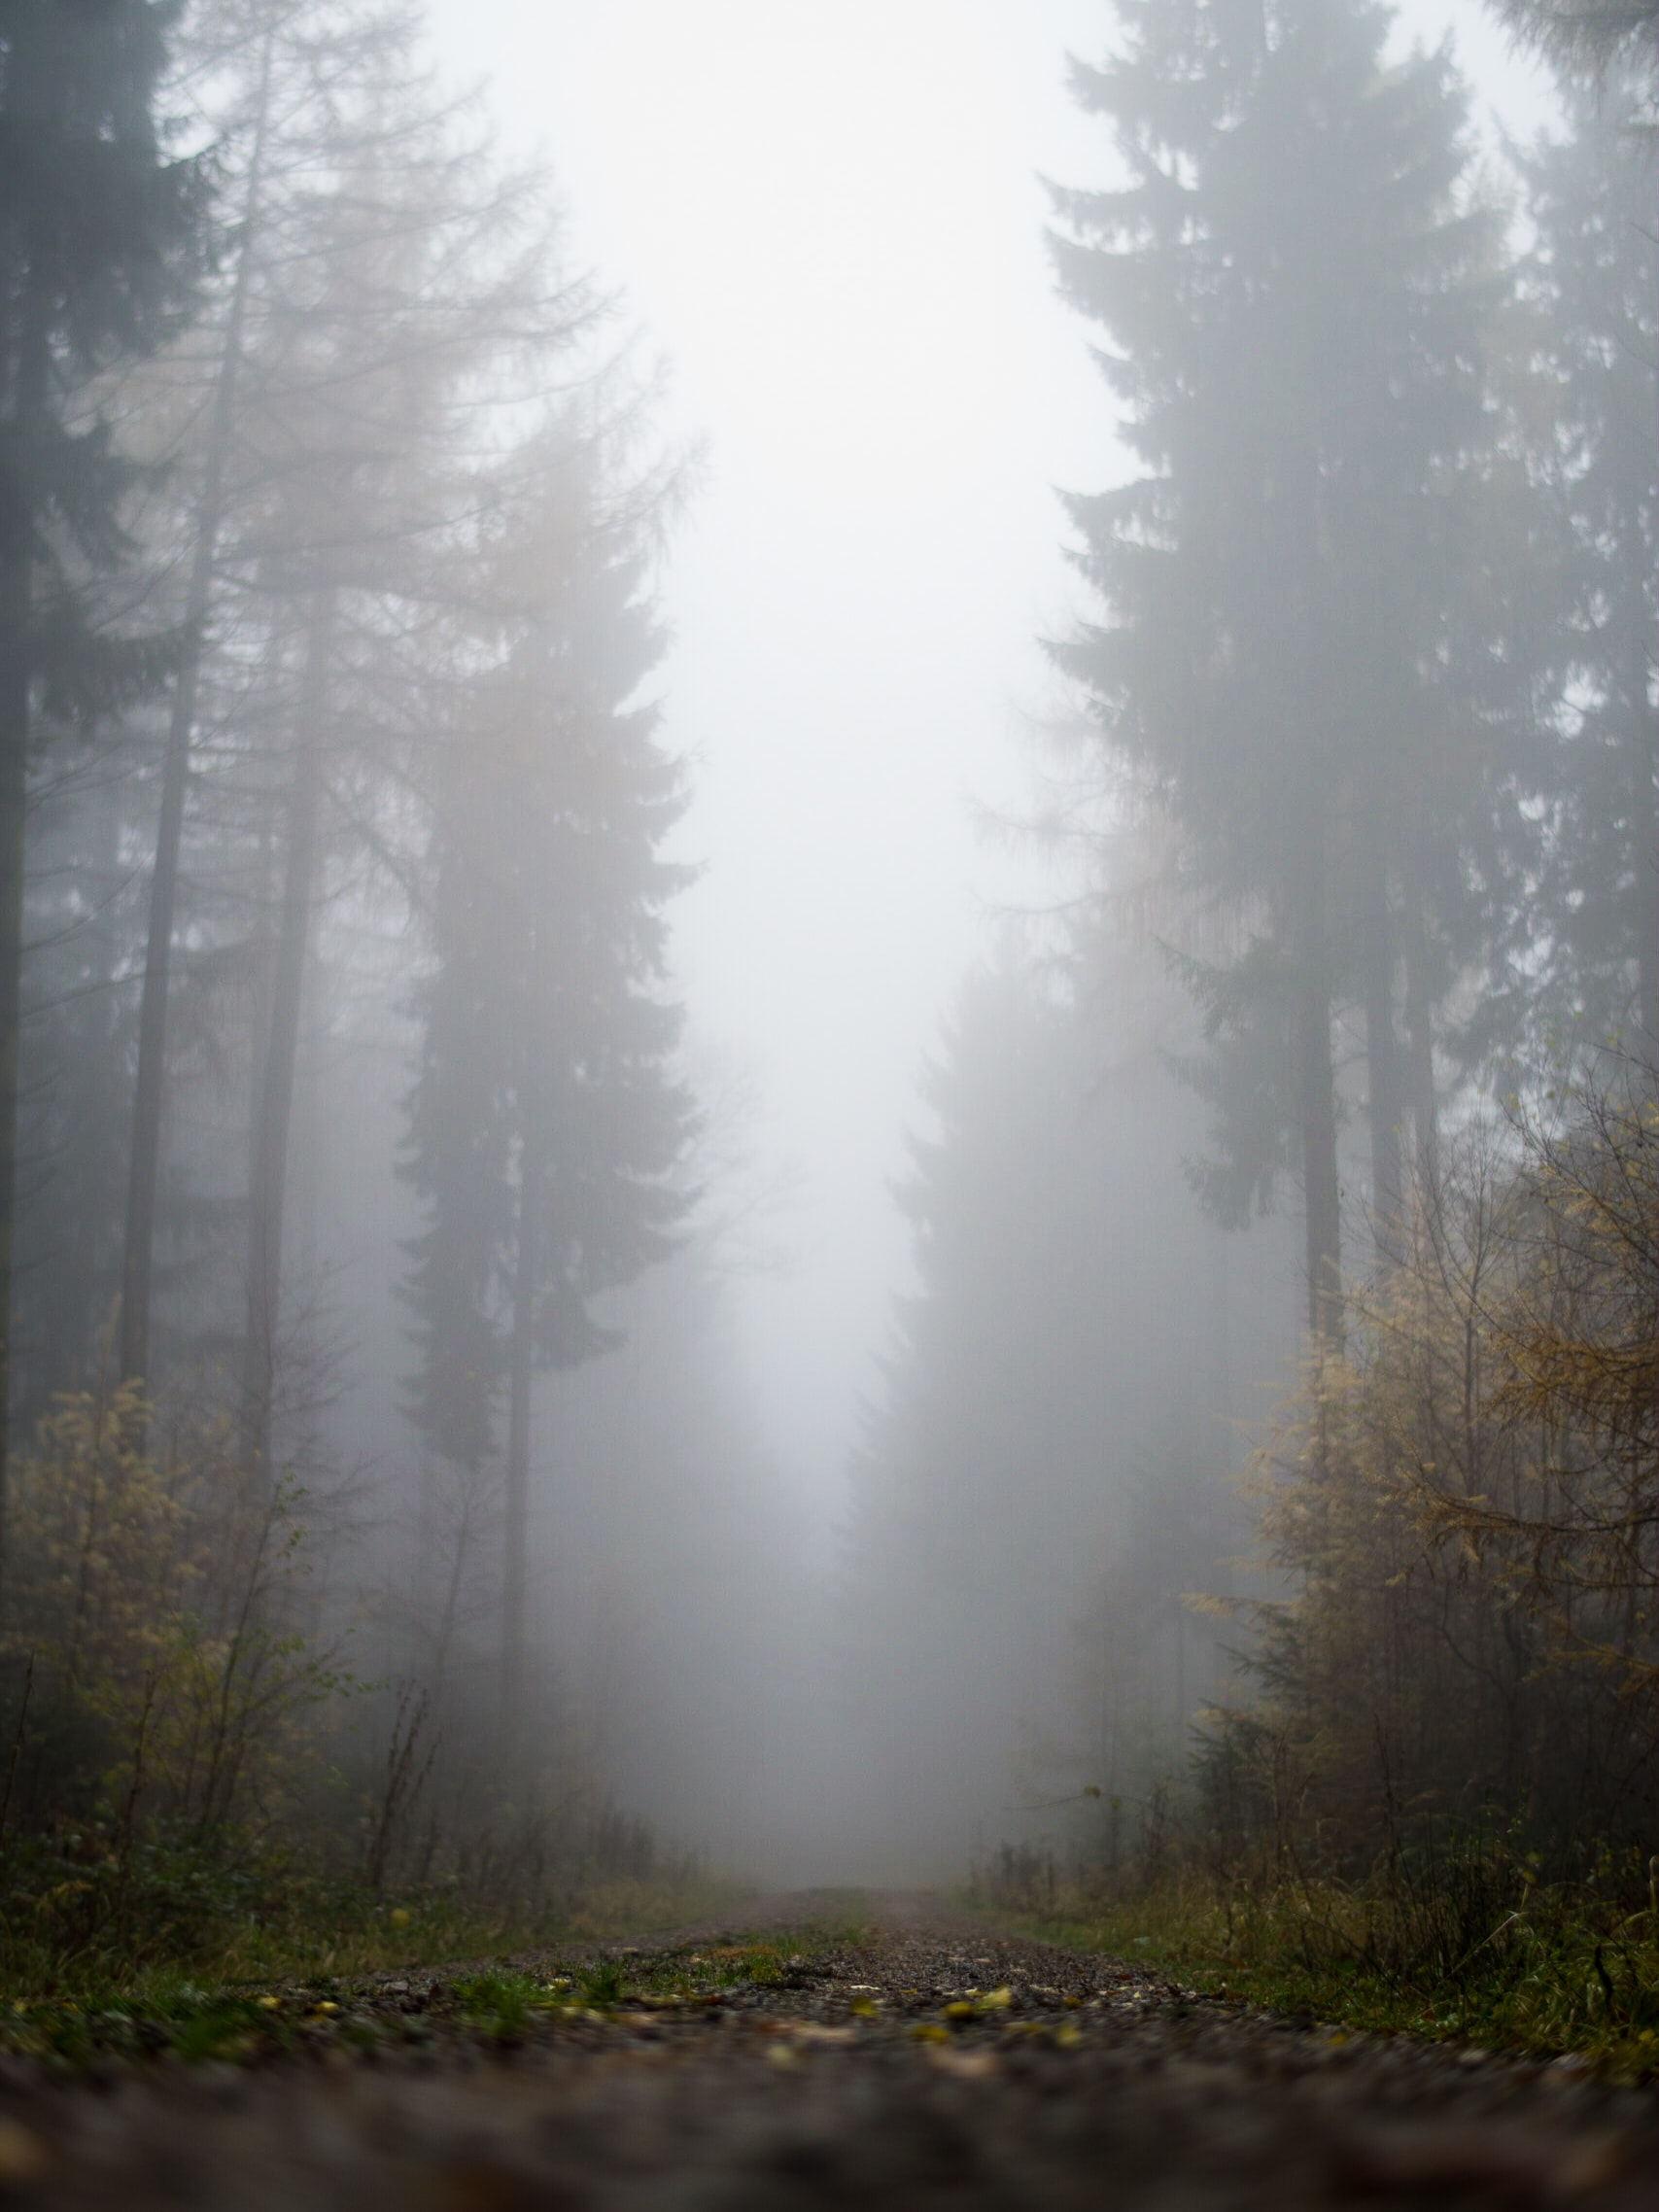 forest is covered with fog during daytime